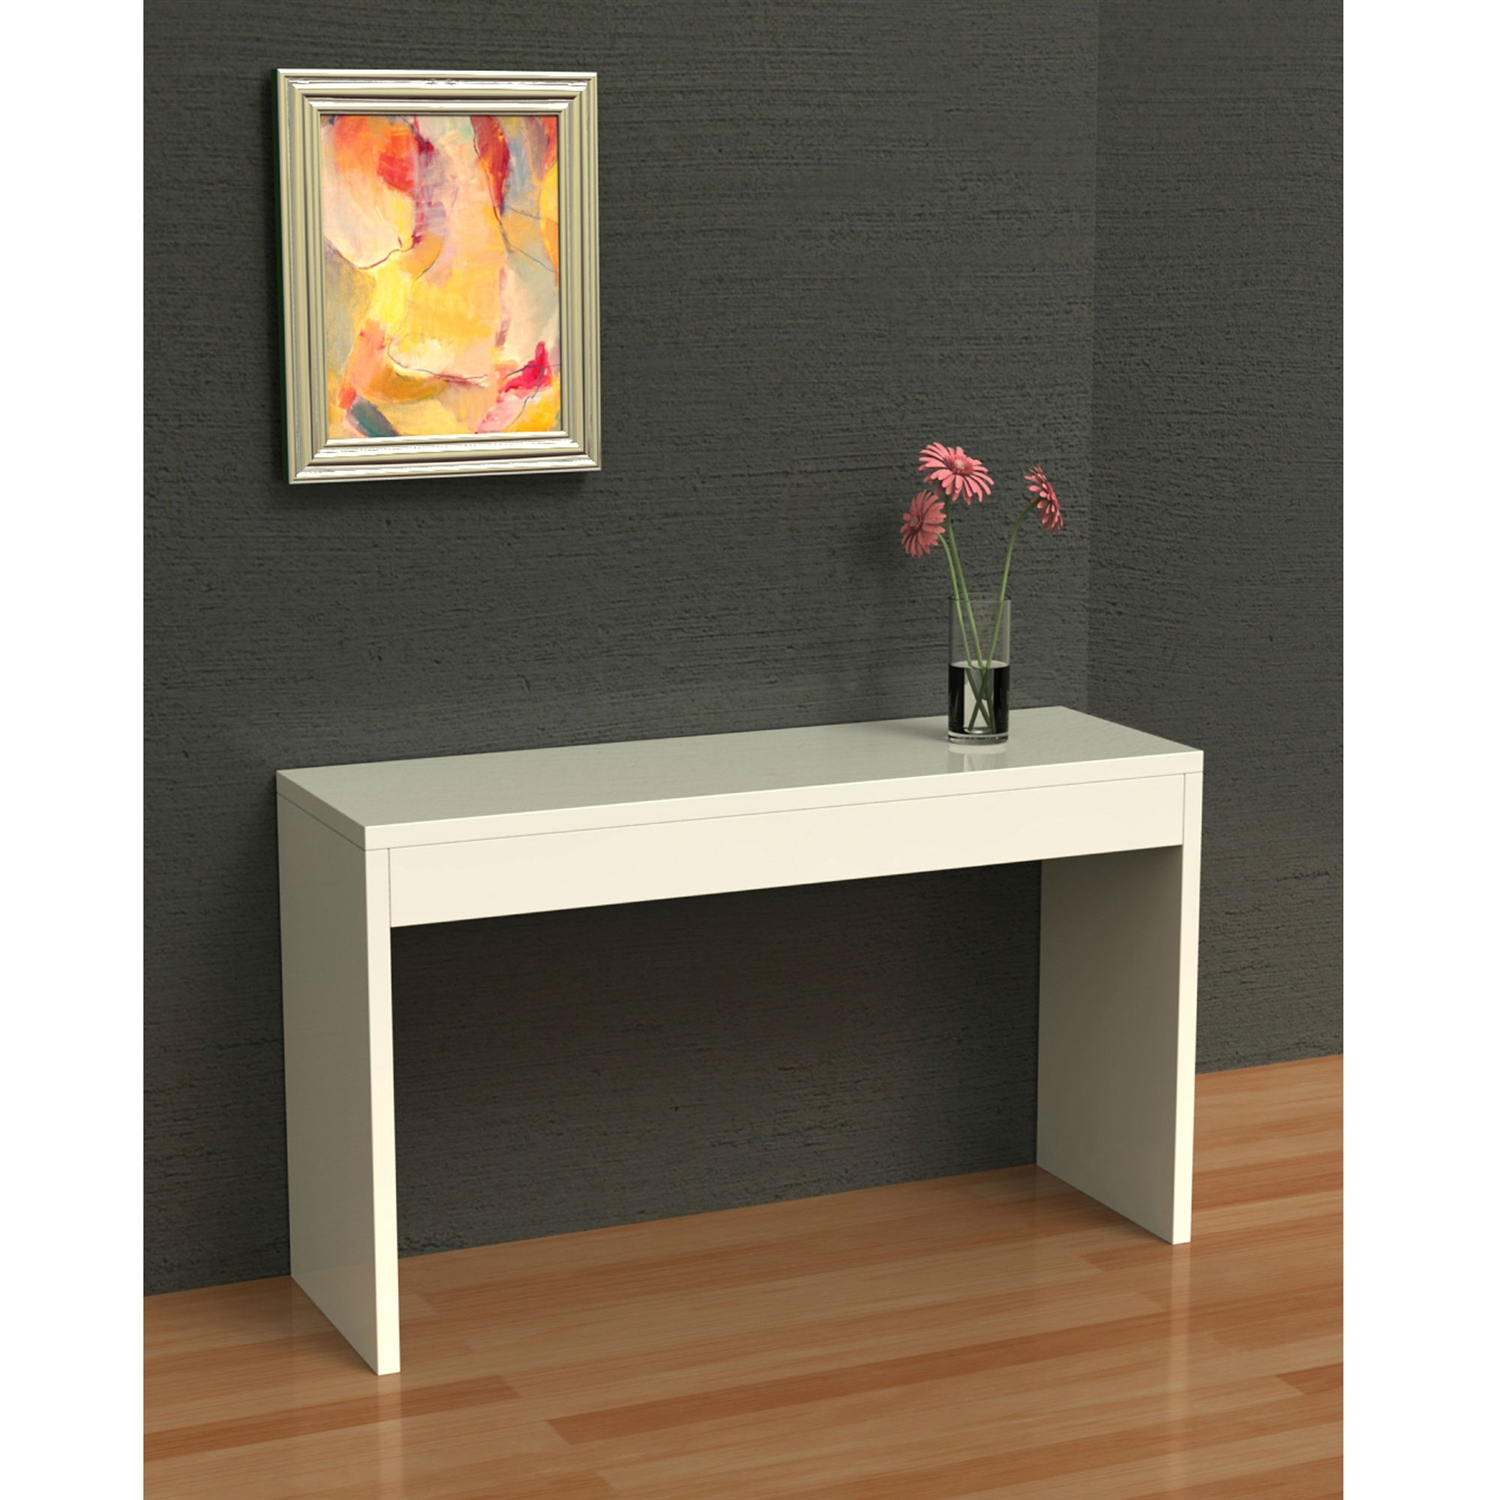 Tremendous White Sofa Table Modern Entryway Living Room Console Table Bralicious Painted Fabric Chair Ideas Braliciousco